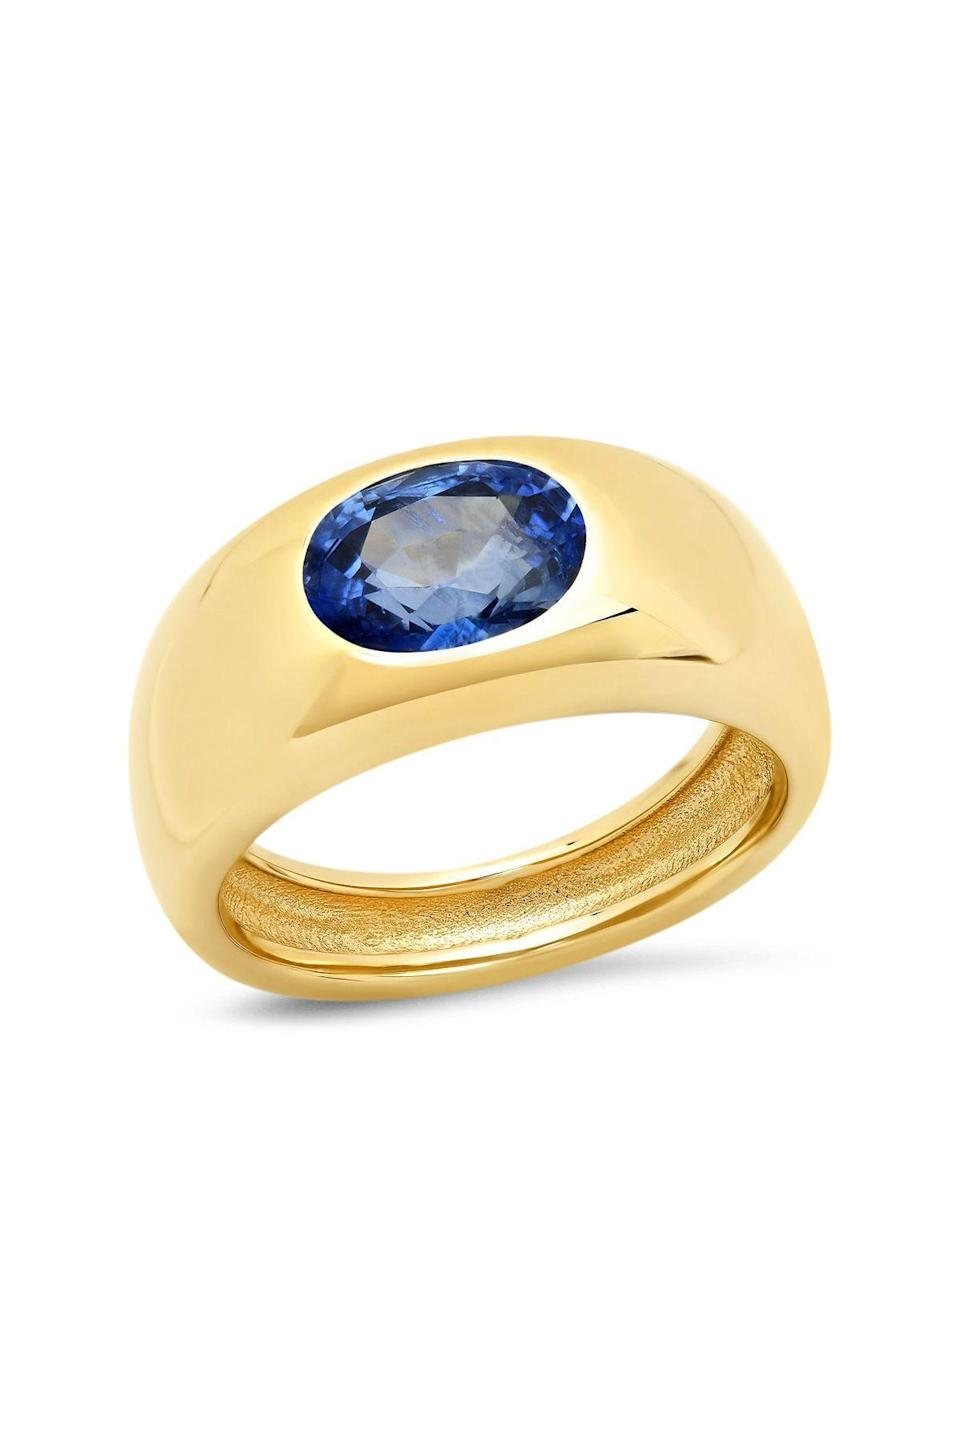 """<p><strong>Sig Ward</strong></p><p>sigwardjewelry.com</p><p><strong>$5600.00</strong></p><p><a href=""""https://www.sigwardjewelry.com/collections/gypsy-gems/products/14k-yg-sapphire-gypsy-ring-2"""" rel=""""nofollow noopener"""" target=""""_blank"""" data-ylk=""""slk:Shop Now"""" class=""""link rapid-noclick-resp"""">Shop Now</a></p><p>The California-based designer Sig Ward often turns to her environs—namely, the Pacific Ocean—for inspiration in her designs. Her Gypsy Dome rings, in particular, are instant heirlooms.</p>"""